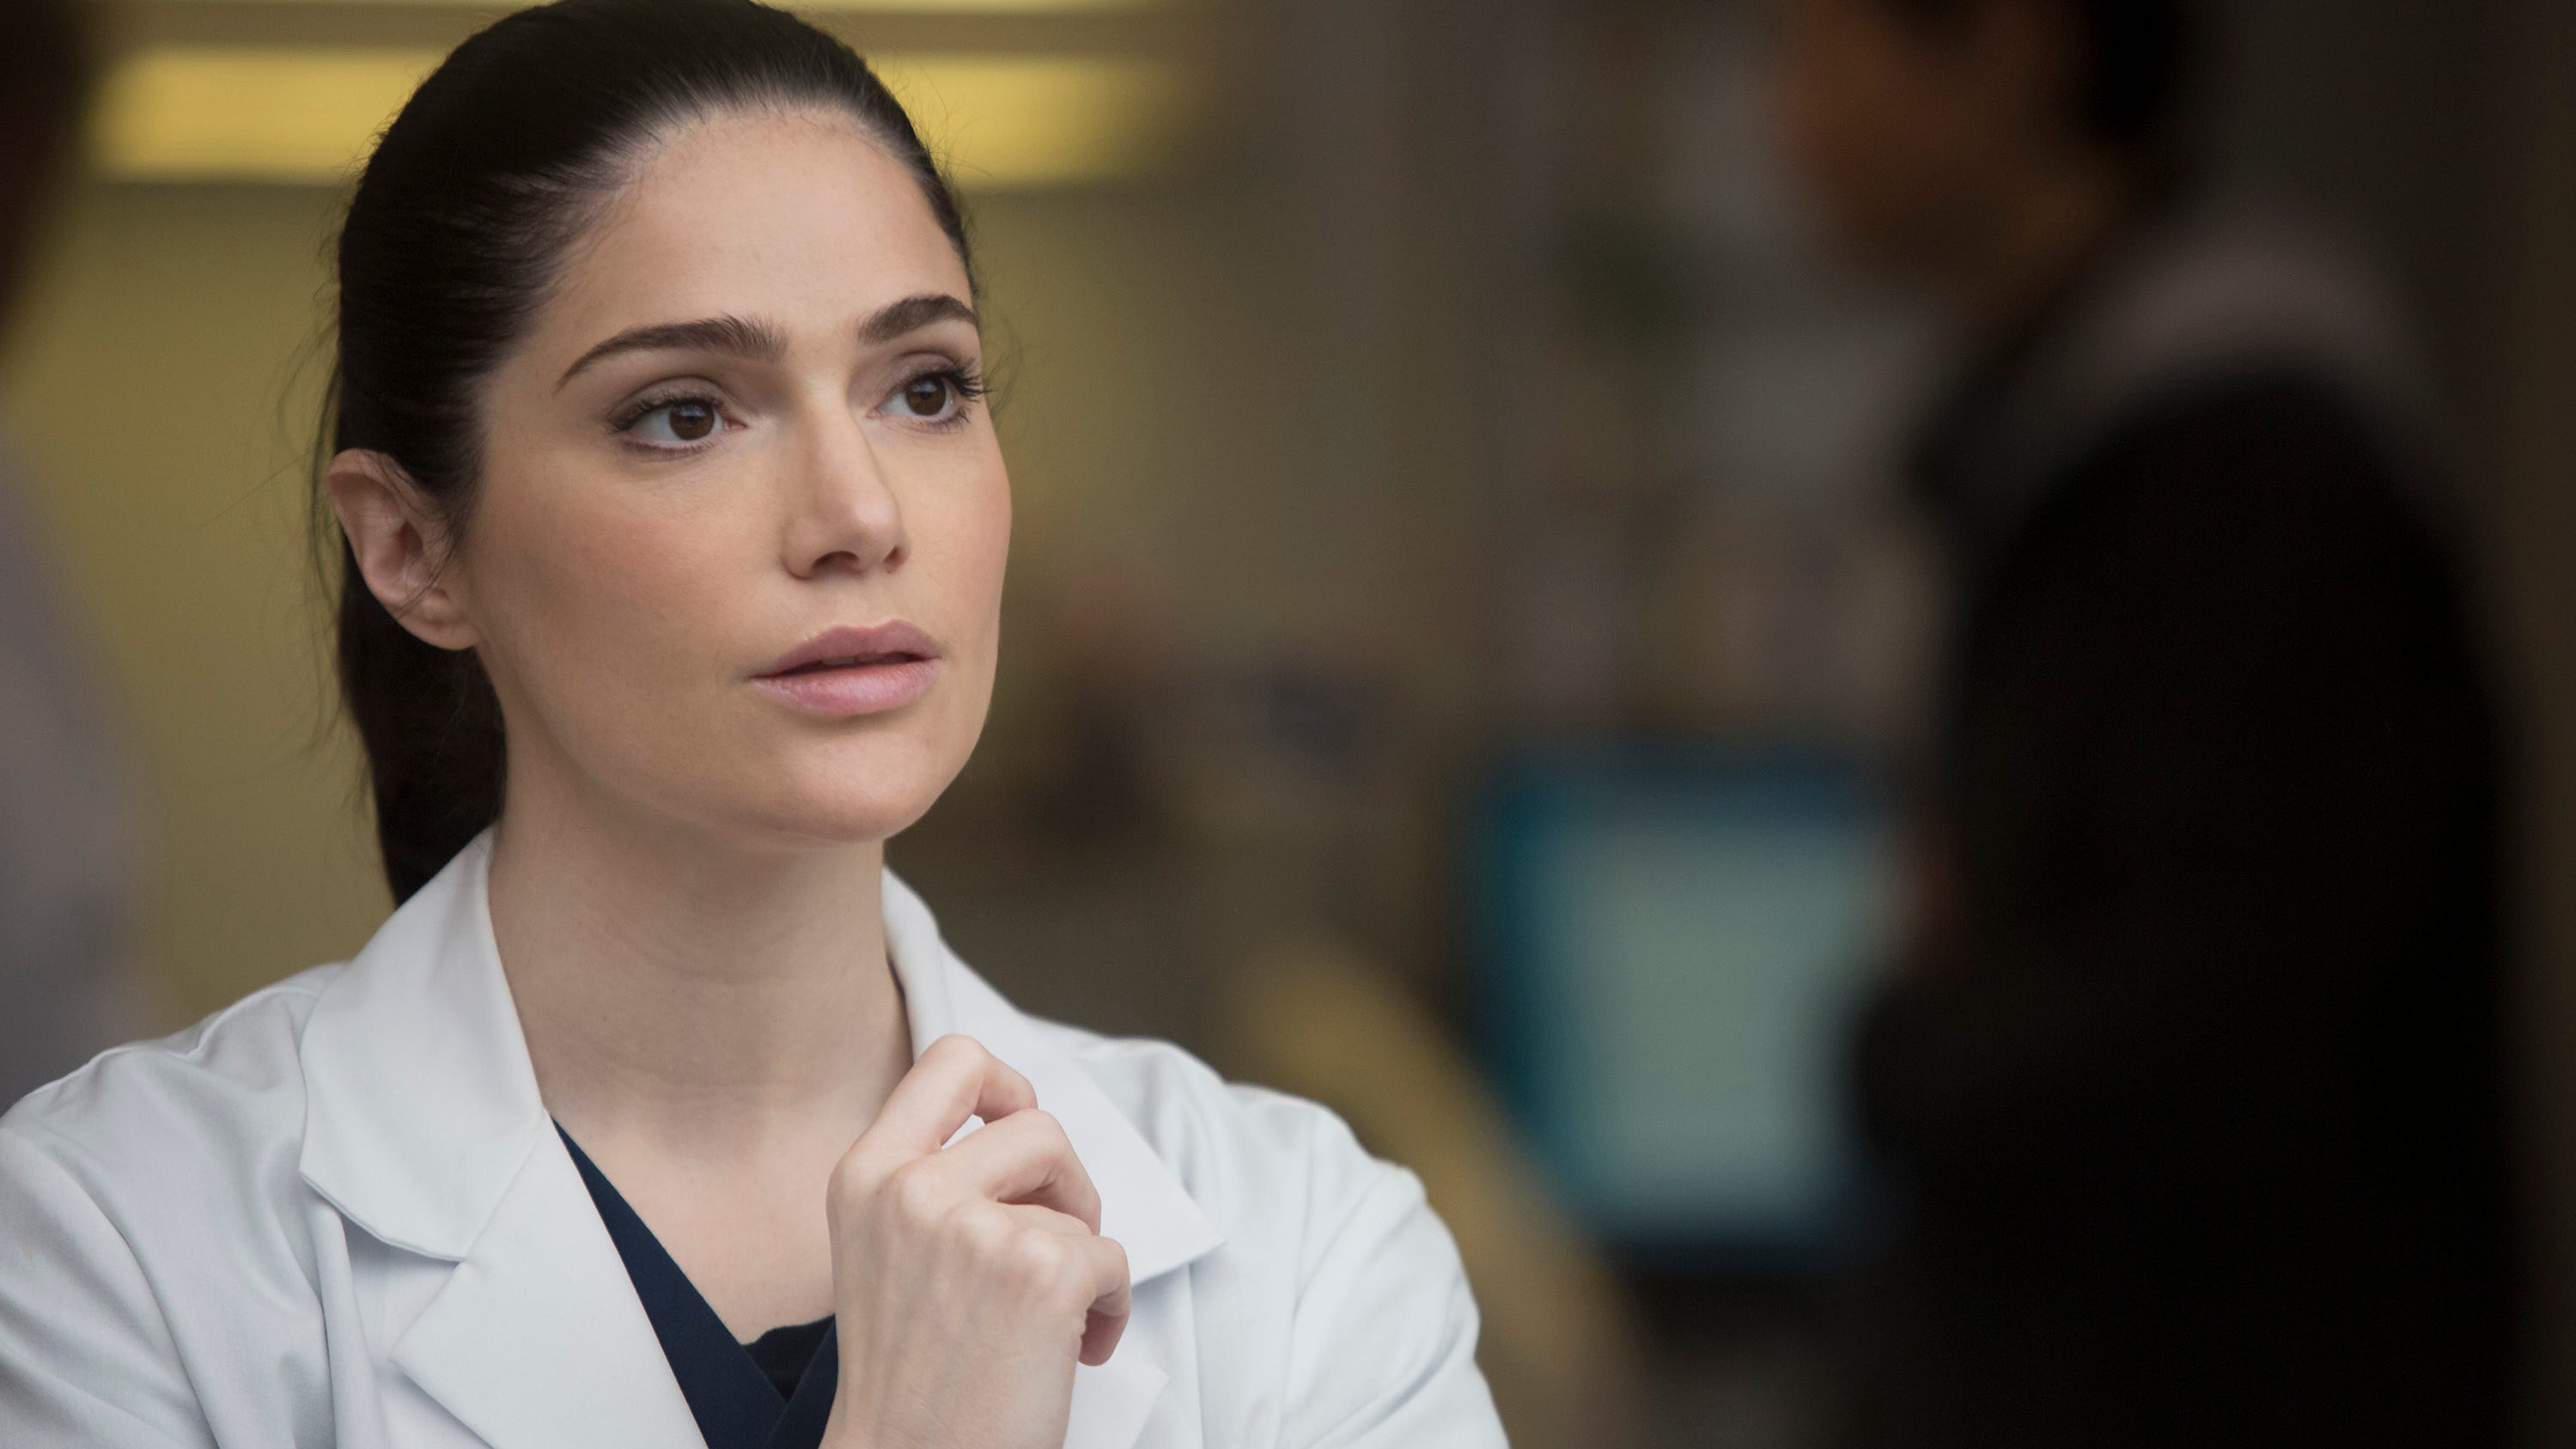 Janet Montgomery, star of 'New Amsterdam' and 'This Is Us,' reveals emergency C-section